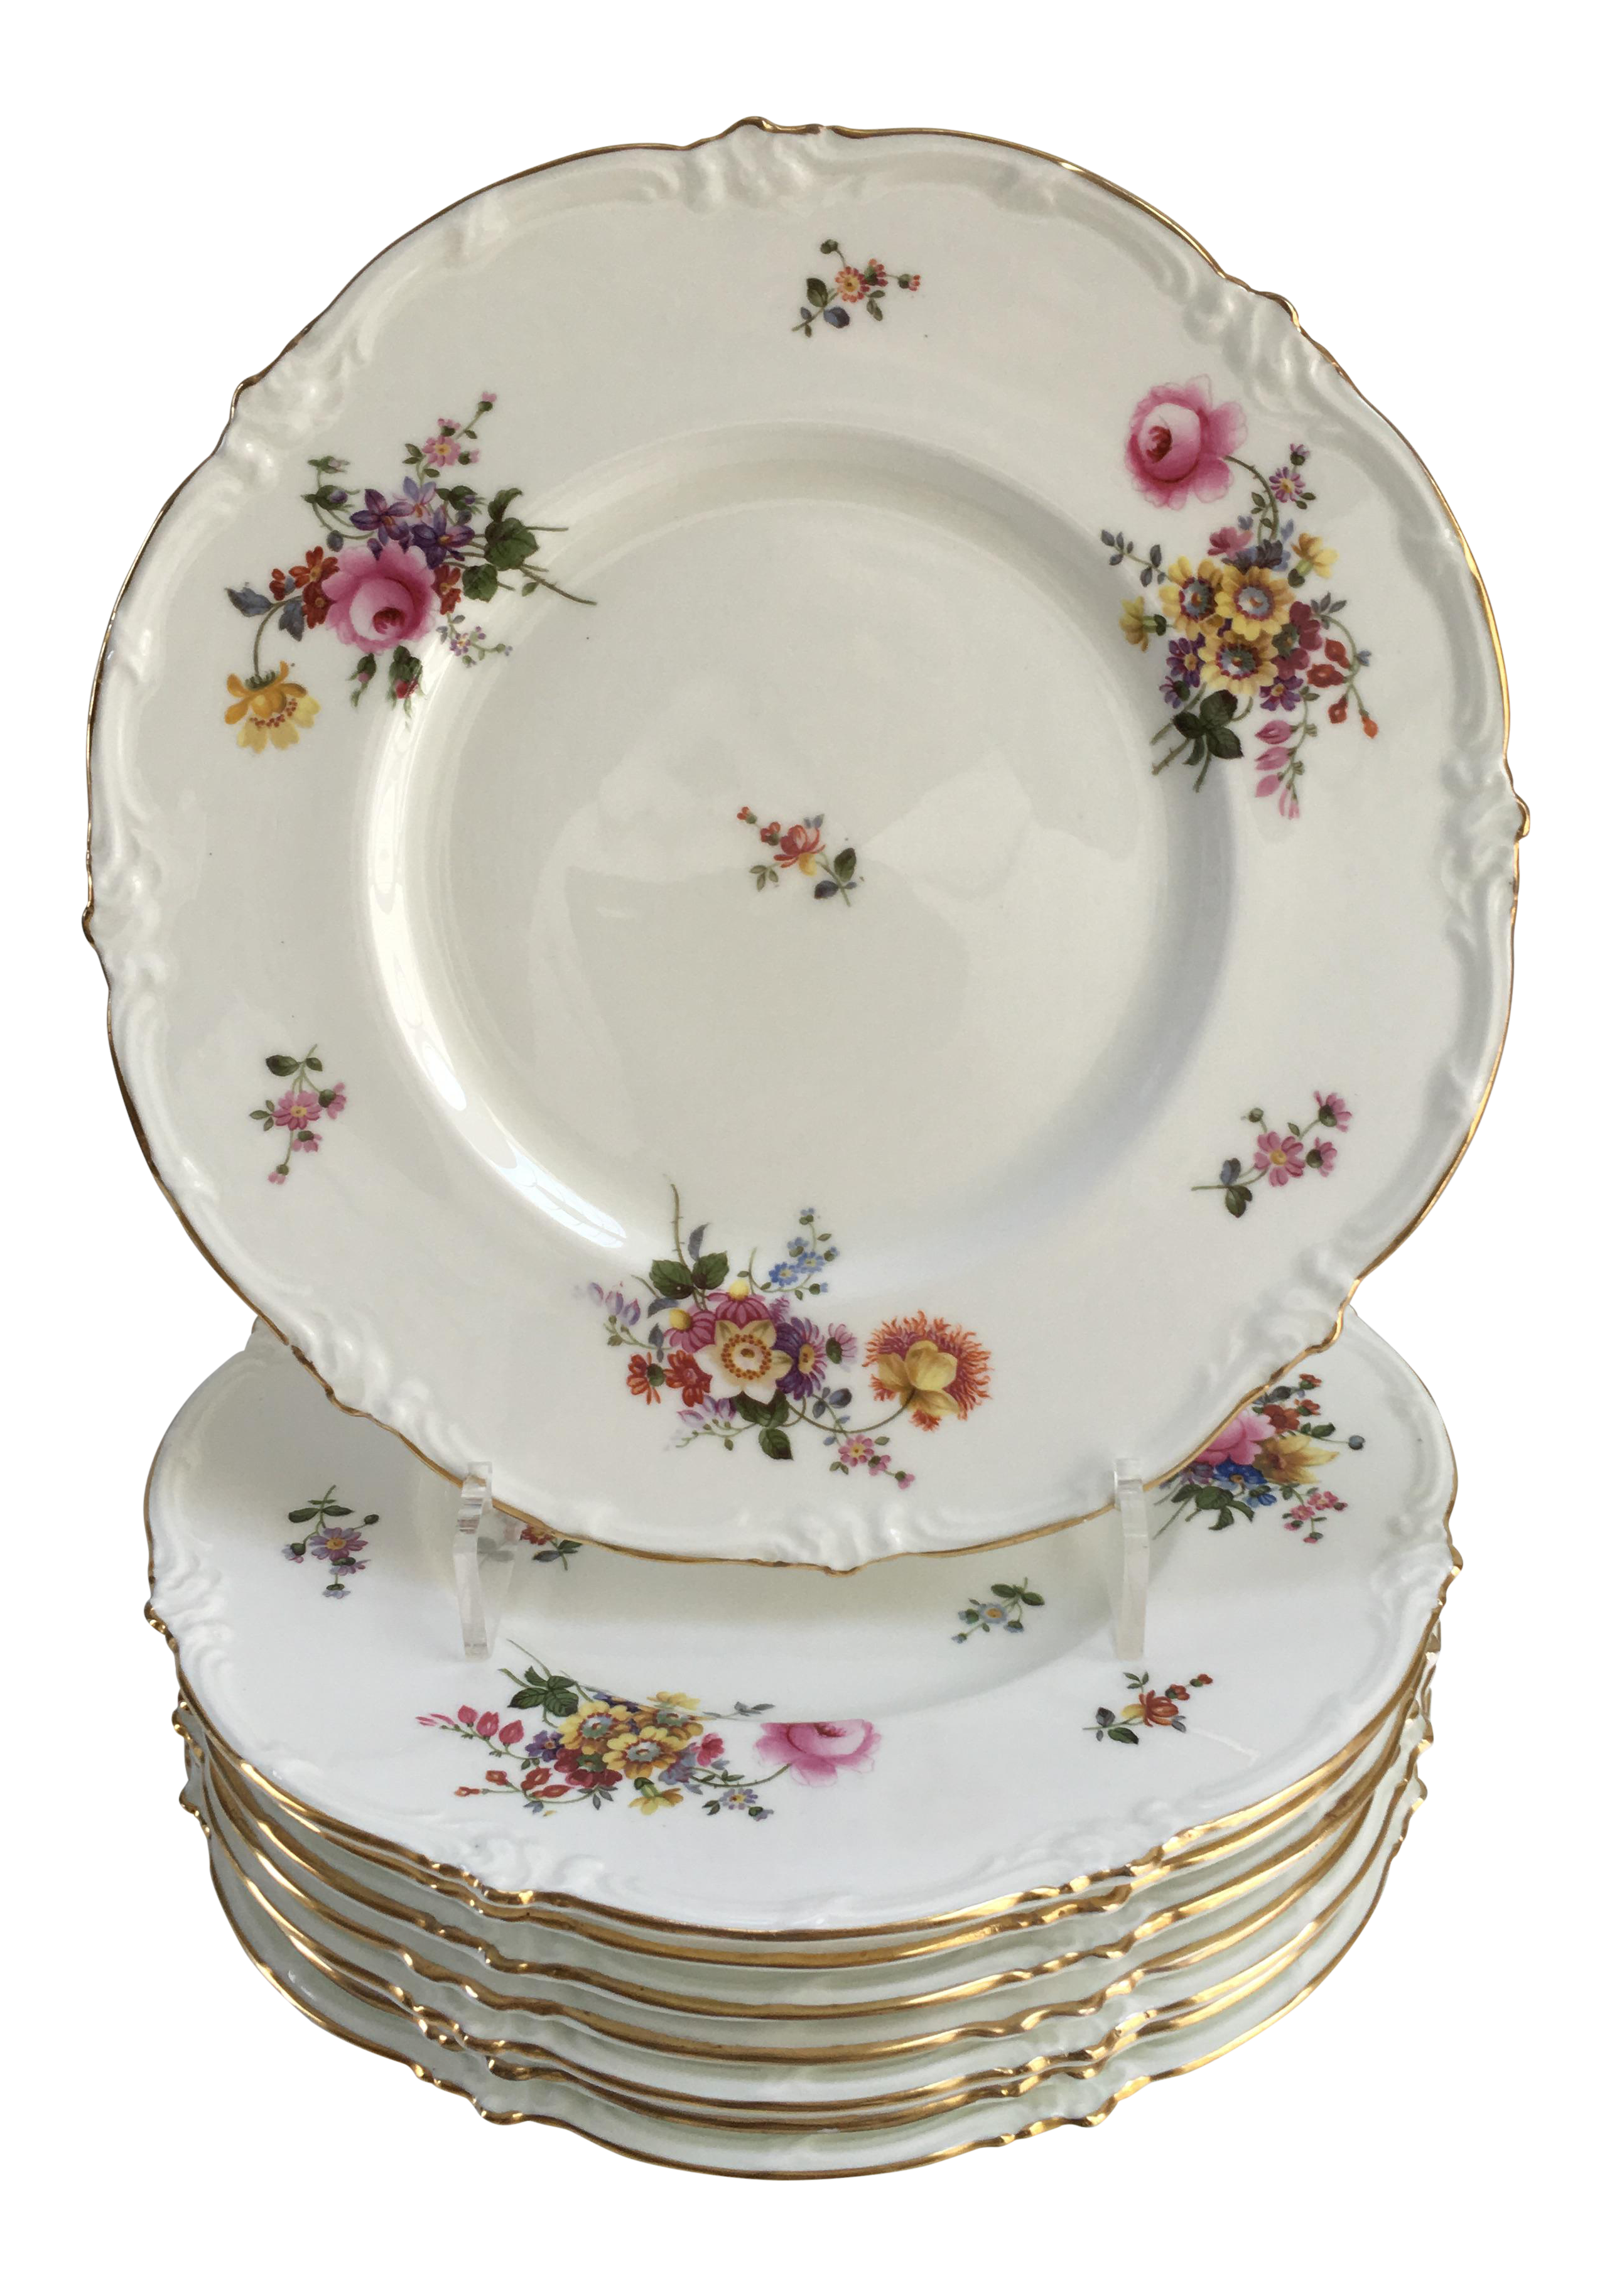 English Royal Cauldon Pink u0026 Gold Floral Fine China Dinner Plates - Set of 8 | Chairish  sc 1 st  Chairish : pink dinnerware plates - Pezcame.Com